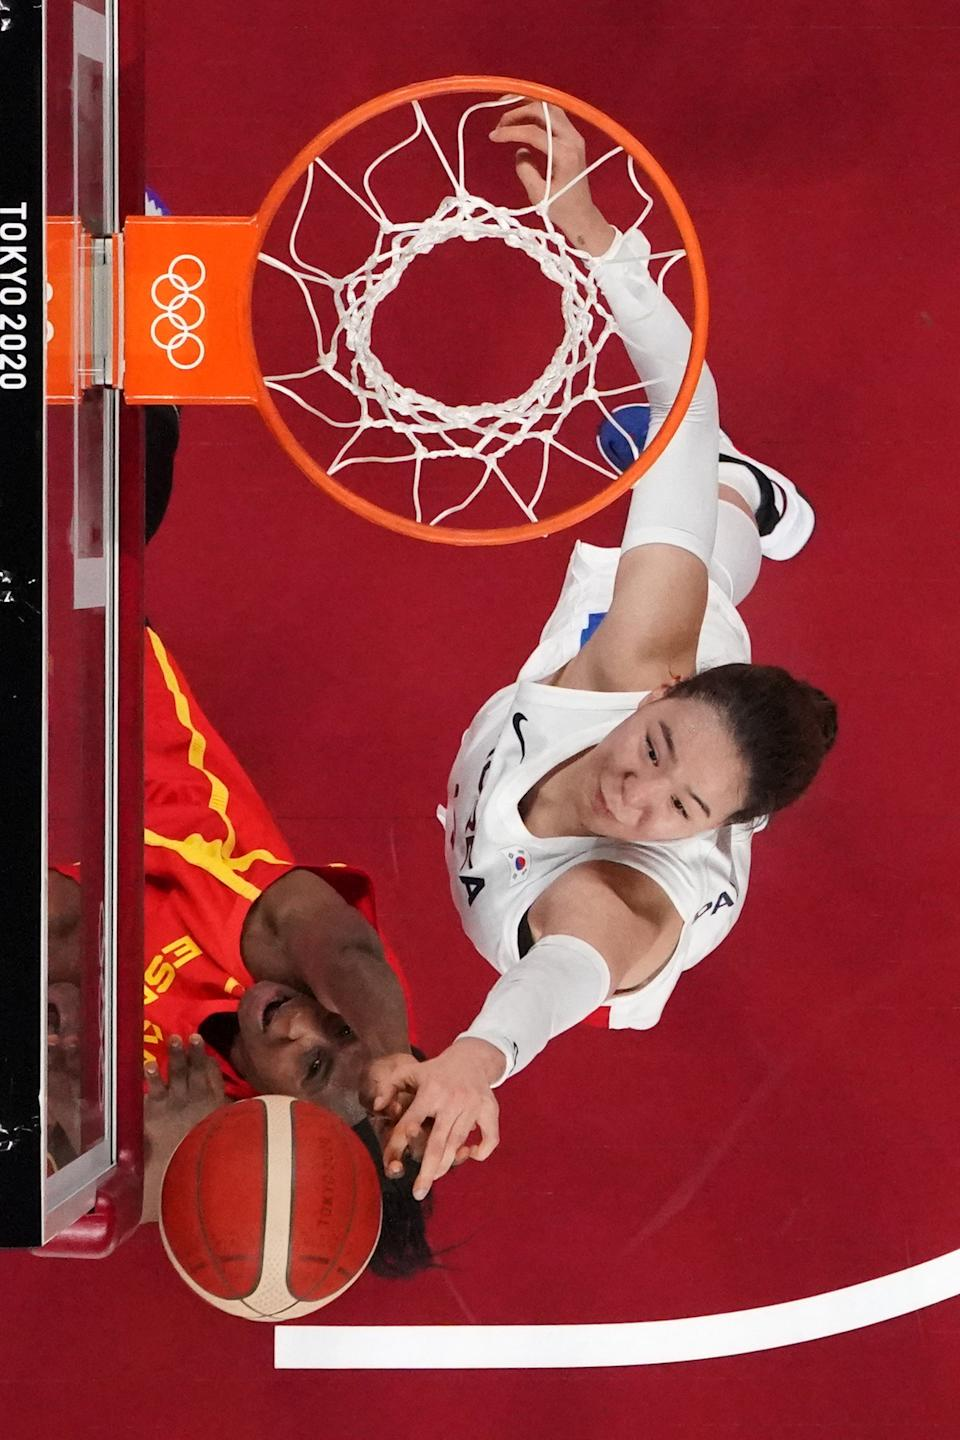 <p>Spain's Astou Ndour (L) and South Korea's Kim Danbi fight for the rebound in the women's preliminary round group A basketball match between South Korea and Spain during the Tokyo 2020 Olympic Games at the Saitama Super Arena in Saitama on July 26, 2021. (Photo by Brian SNYDER / POOL / AFP)</p>